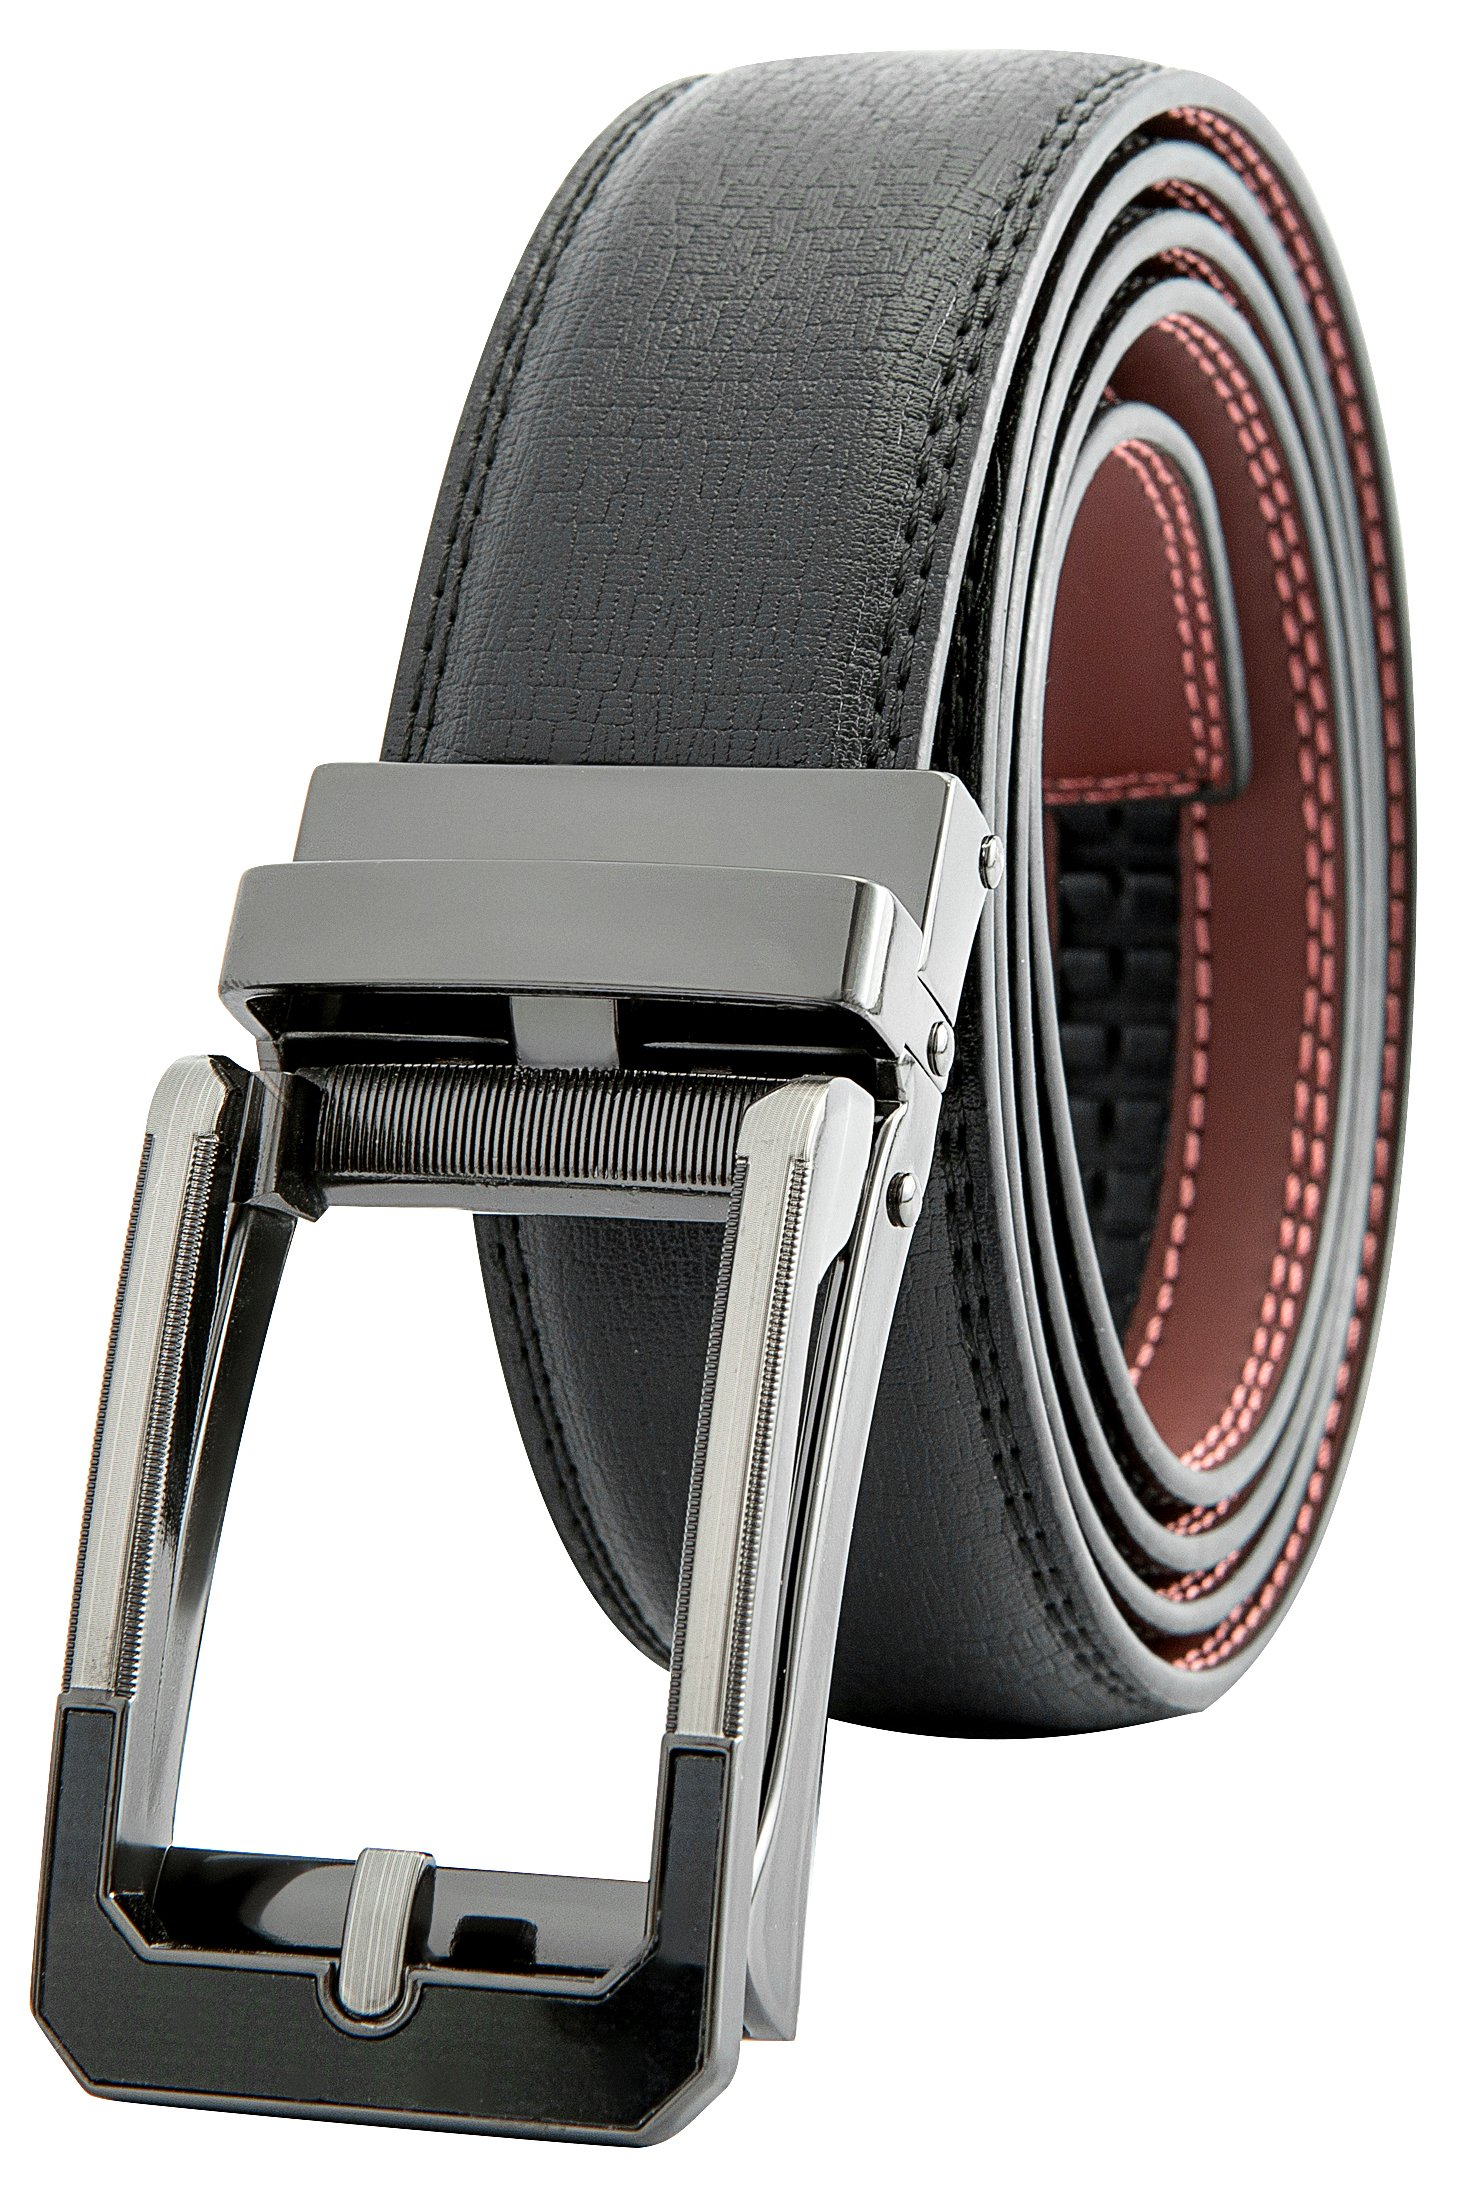 Men's Black Ratchet Belt - Black and Silver Open Style - by J. Dapper by J. Dapper (Image #1)